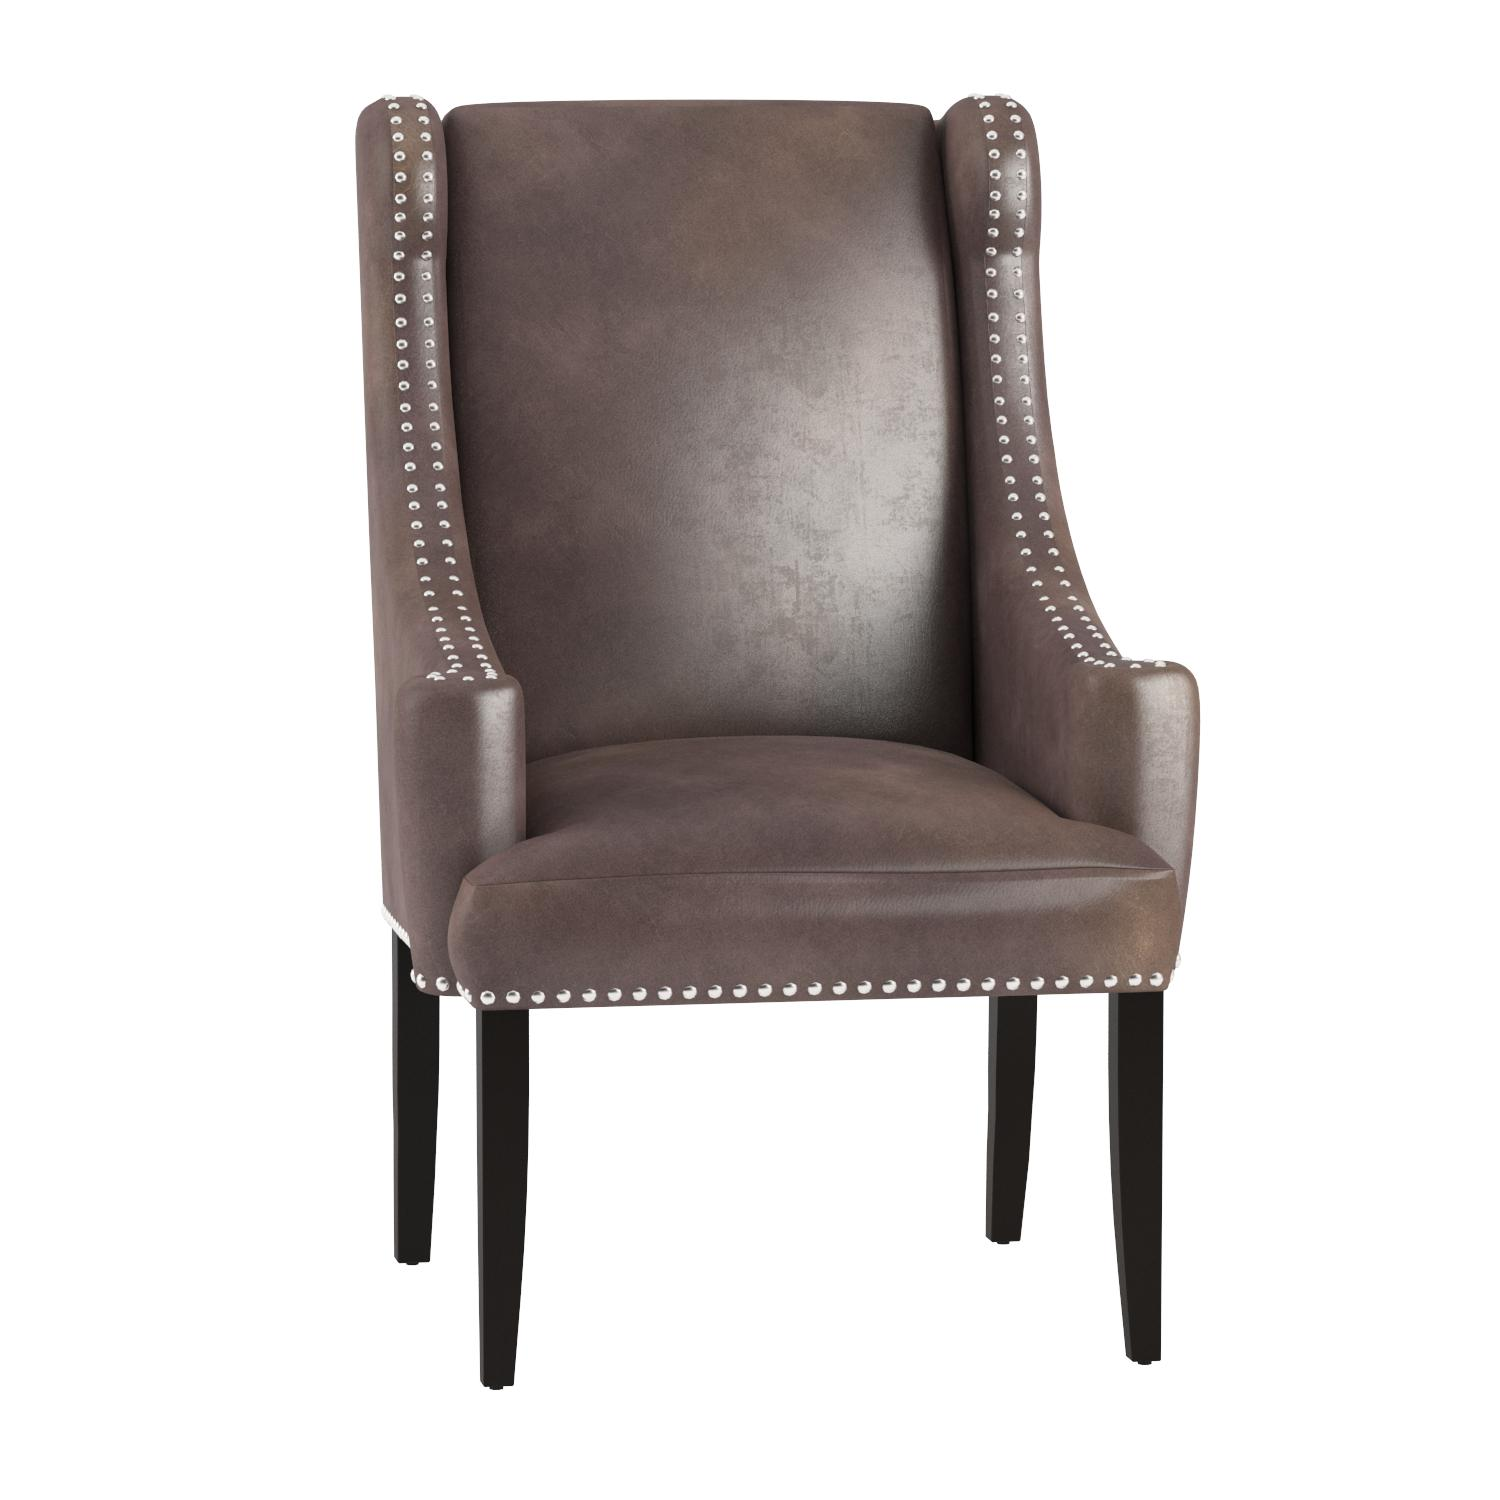 Cheap Madison Park Marcel High Back Wing Chair Taupe See below living room chair for sale